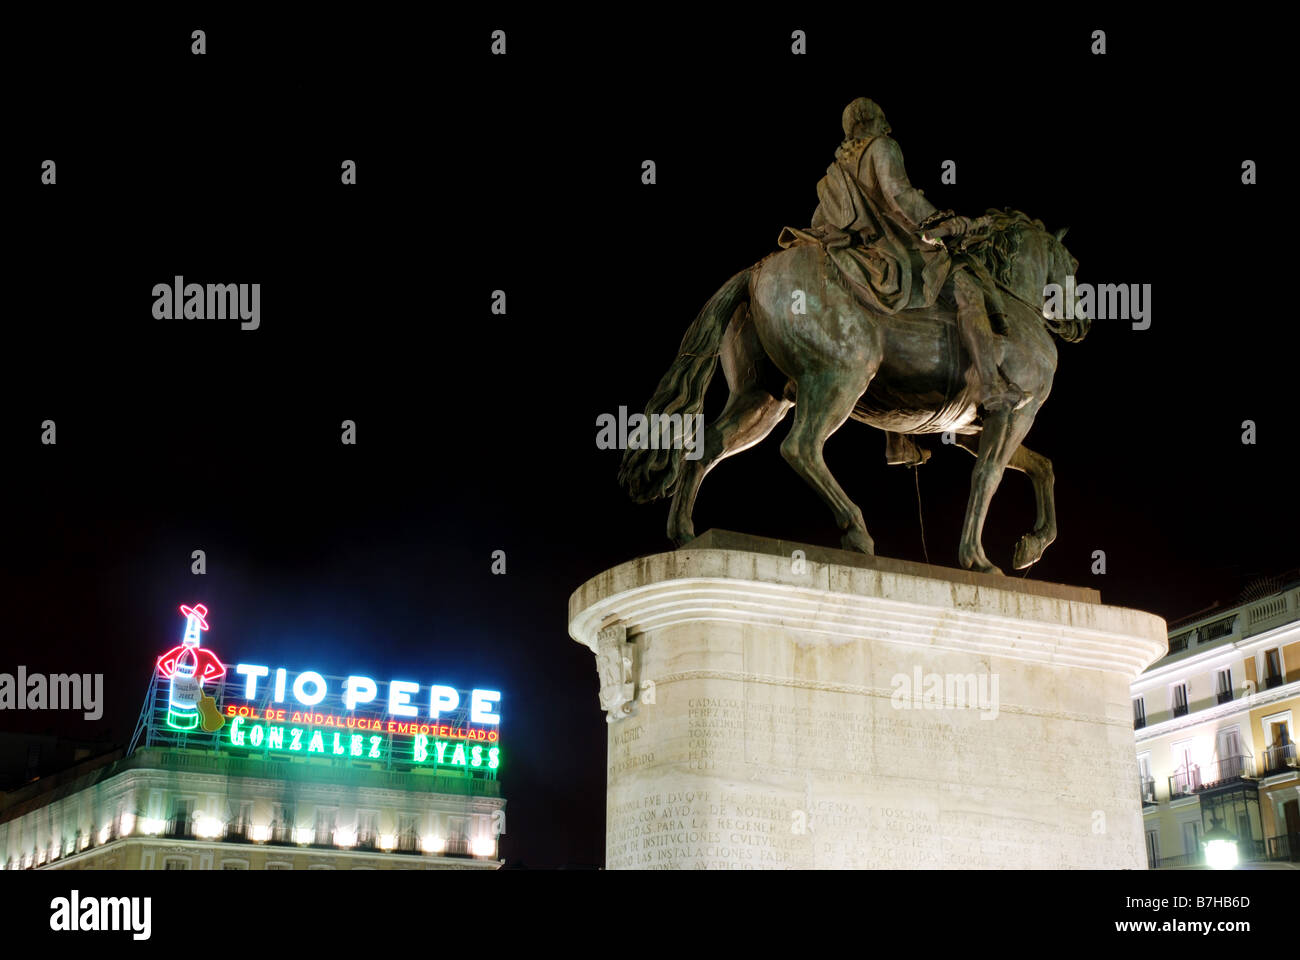 Tio Pepe neon sign and equestrian statue of king Carlos III. Night view. Puerta del Sol. Madrid. Spain. - Stock Image